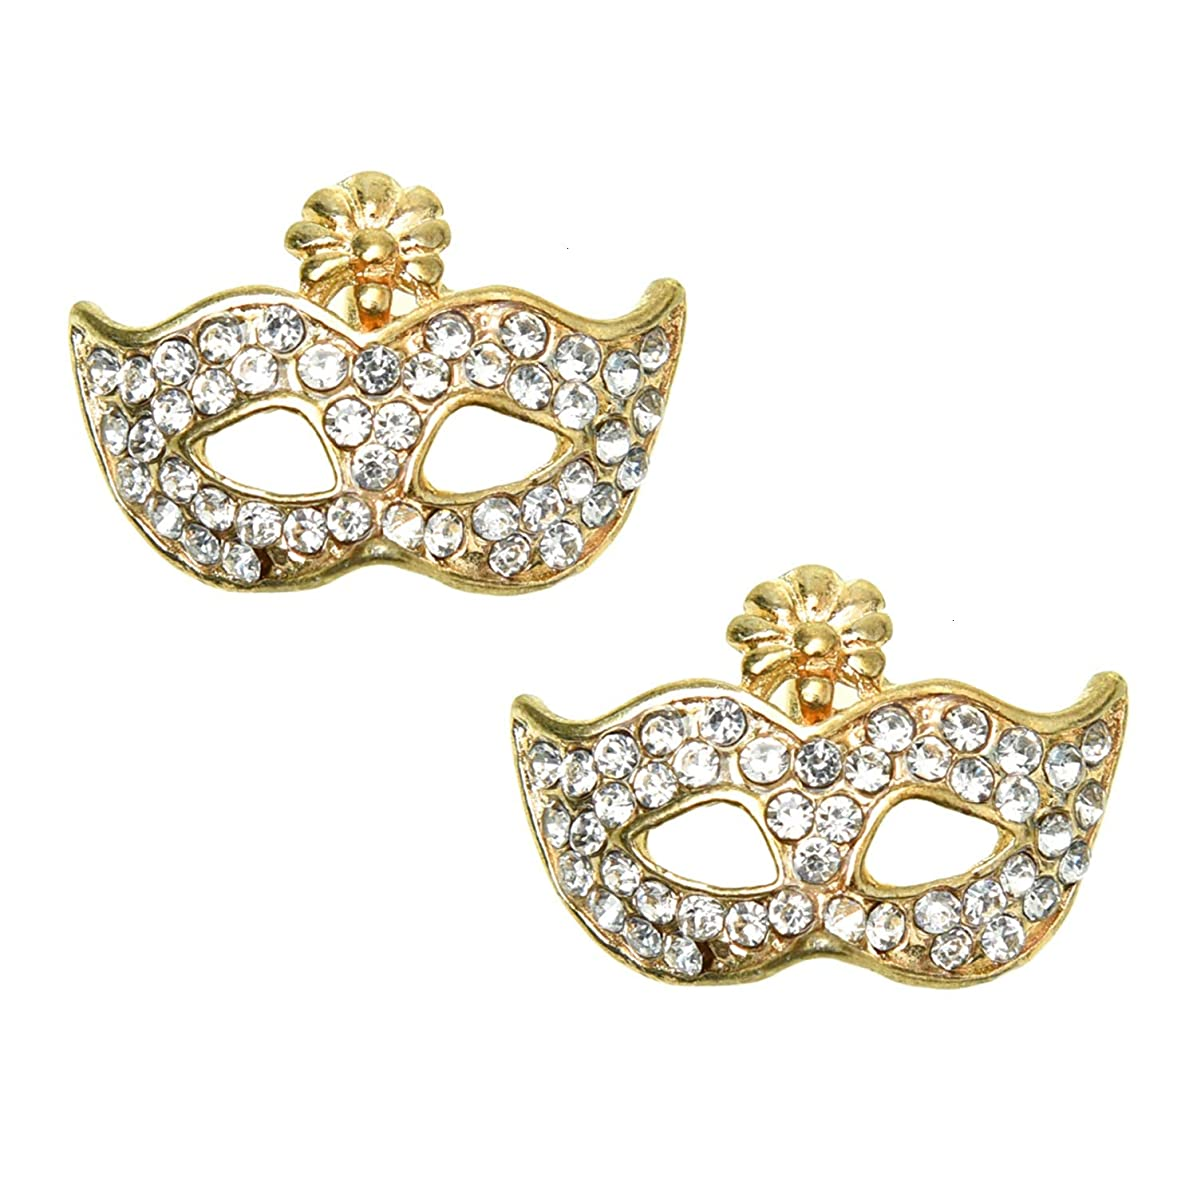 Monrocco 10Pcs Rhinestone Crystal Masquerade Mask Earrings Crystal Mask DIY Charms Pendant Jewelry Findings for Jewelry Making Necklace Bracelet DIY